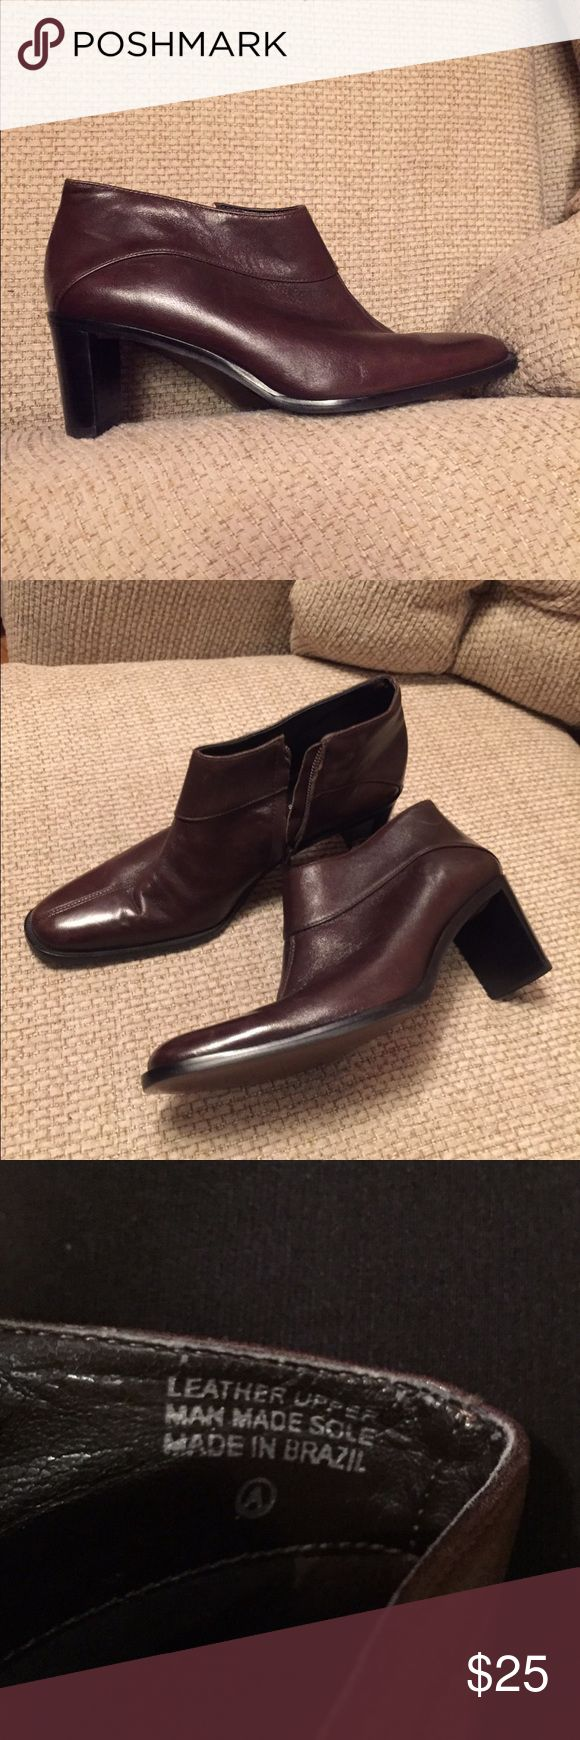 Women's Brown Ankle Boots Donnie Etienne Aigner Women's Brown Leather Ankle Boots, by ETIENNE AIGNER Brand new Ankle boots, Chic, Dressy, Classy! 80% off Brand New prices! Etienne Aigner Shoes Ankle Boots & Booties